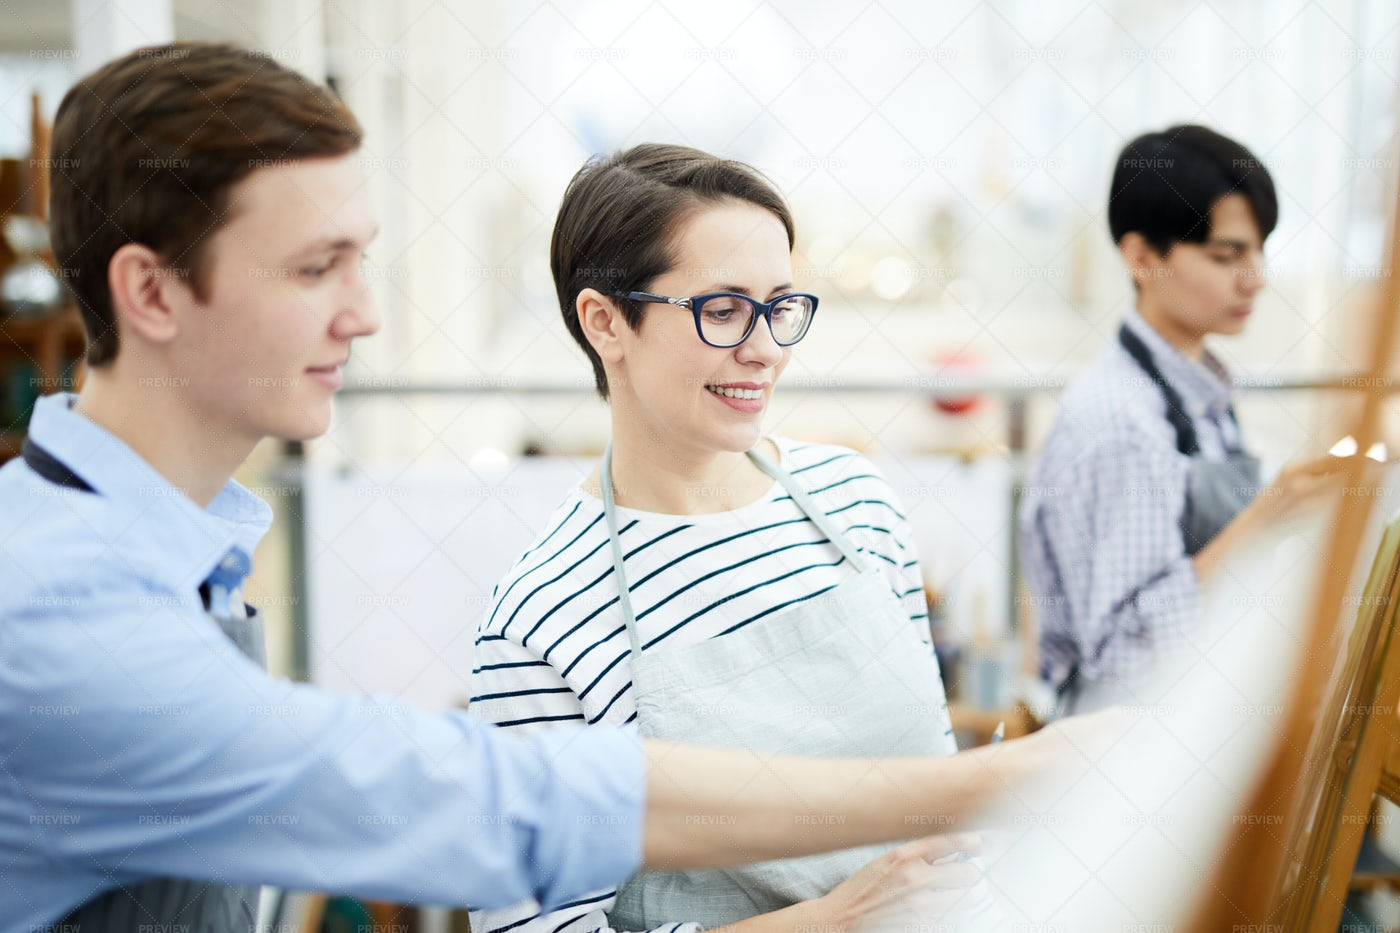 Smiling Woman Painting In Class: Stock Photos